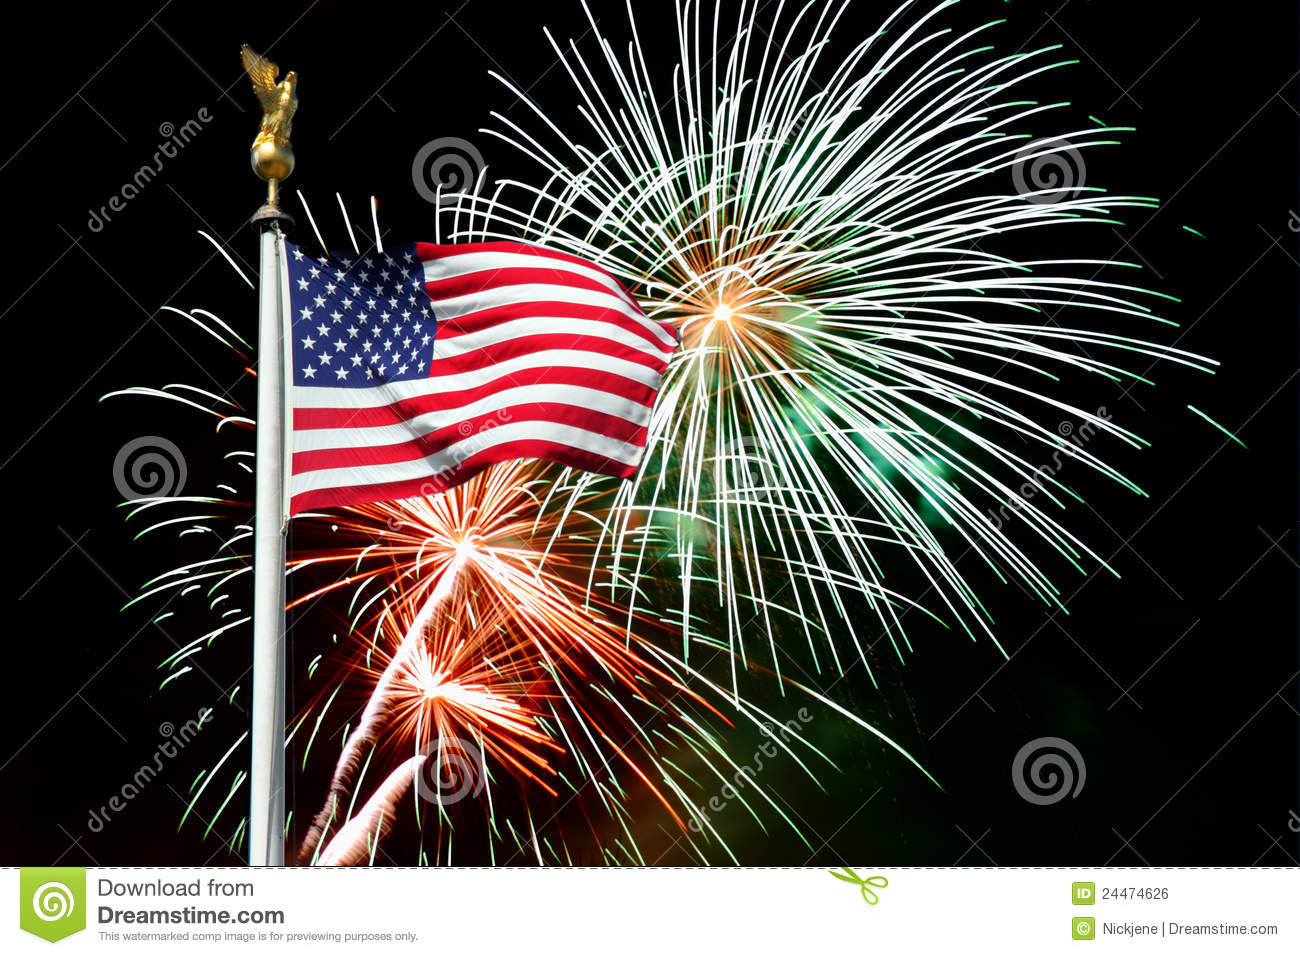 Fireworks clipart flag In with Fireworks American With